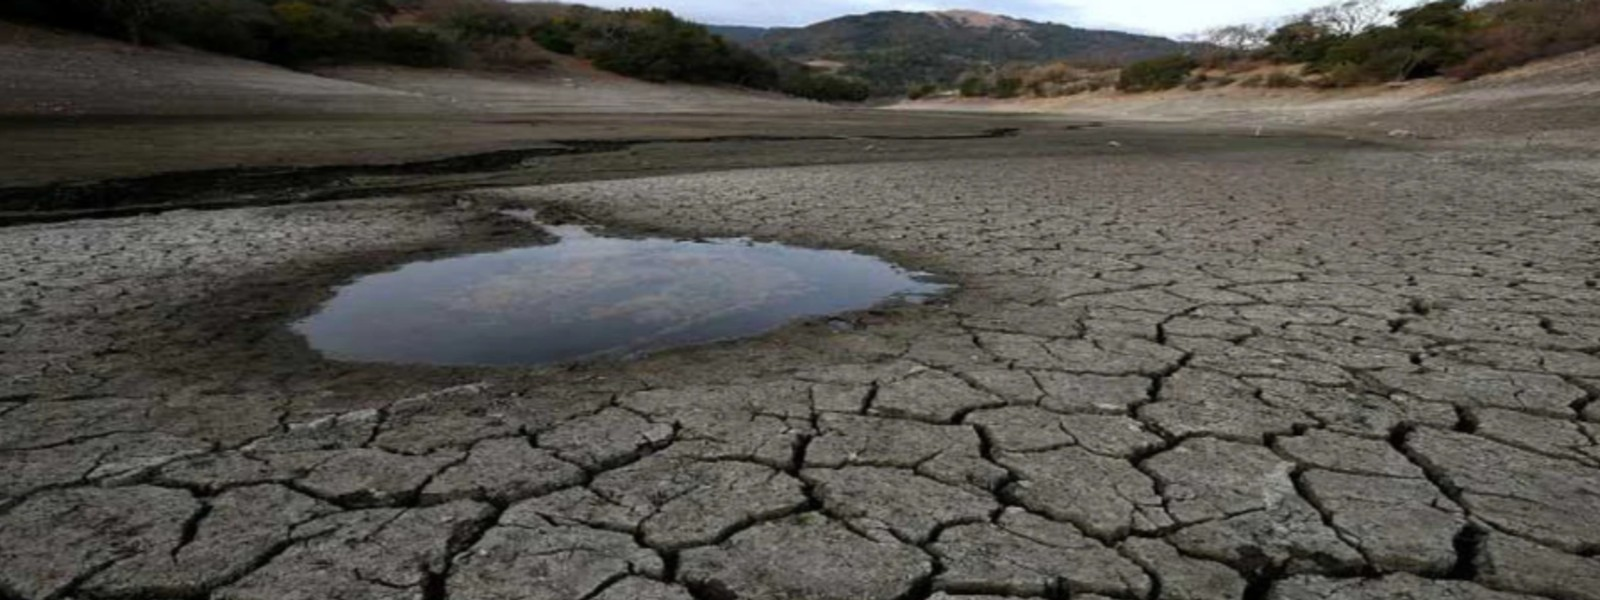 More than 232,000 people affected due to dry weather conditions: DMC